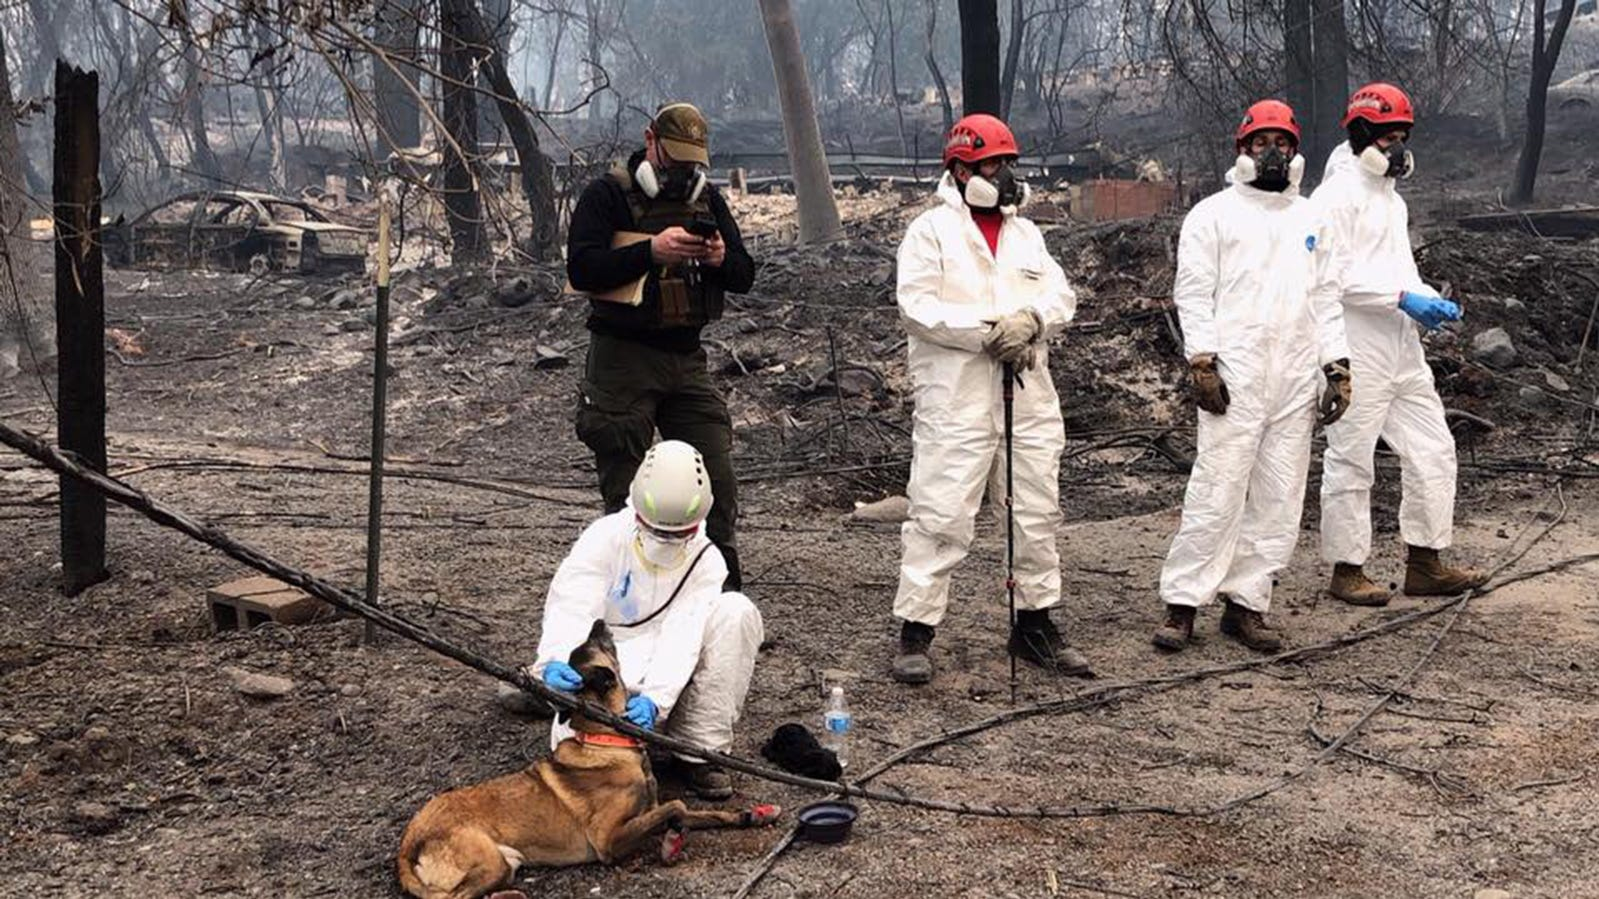 A handout photo made available by the Butte County Sheriff and Coroner's Department shows a team of rescue workers preparing to search for the remains of victims missing in the Camp Fire in Butte County, California, on Nov. 16, 2018.